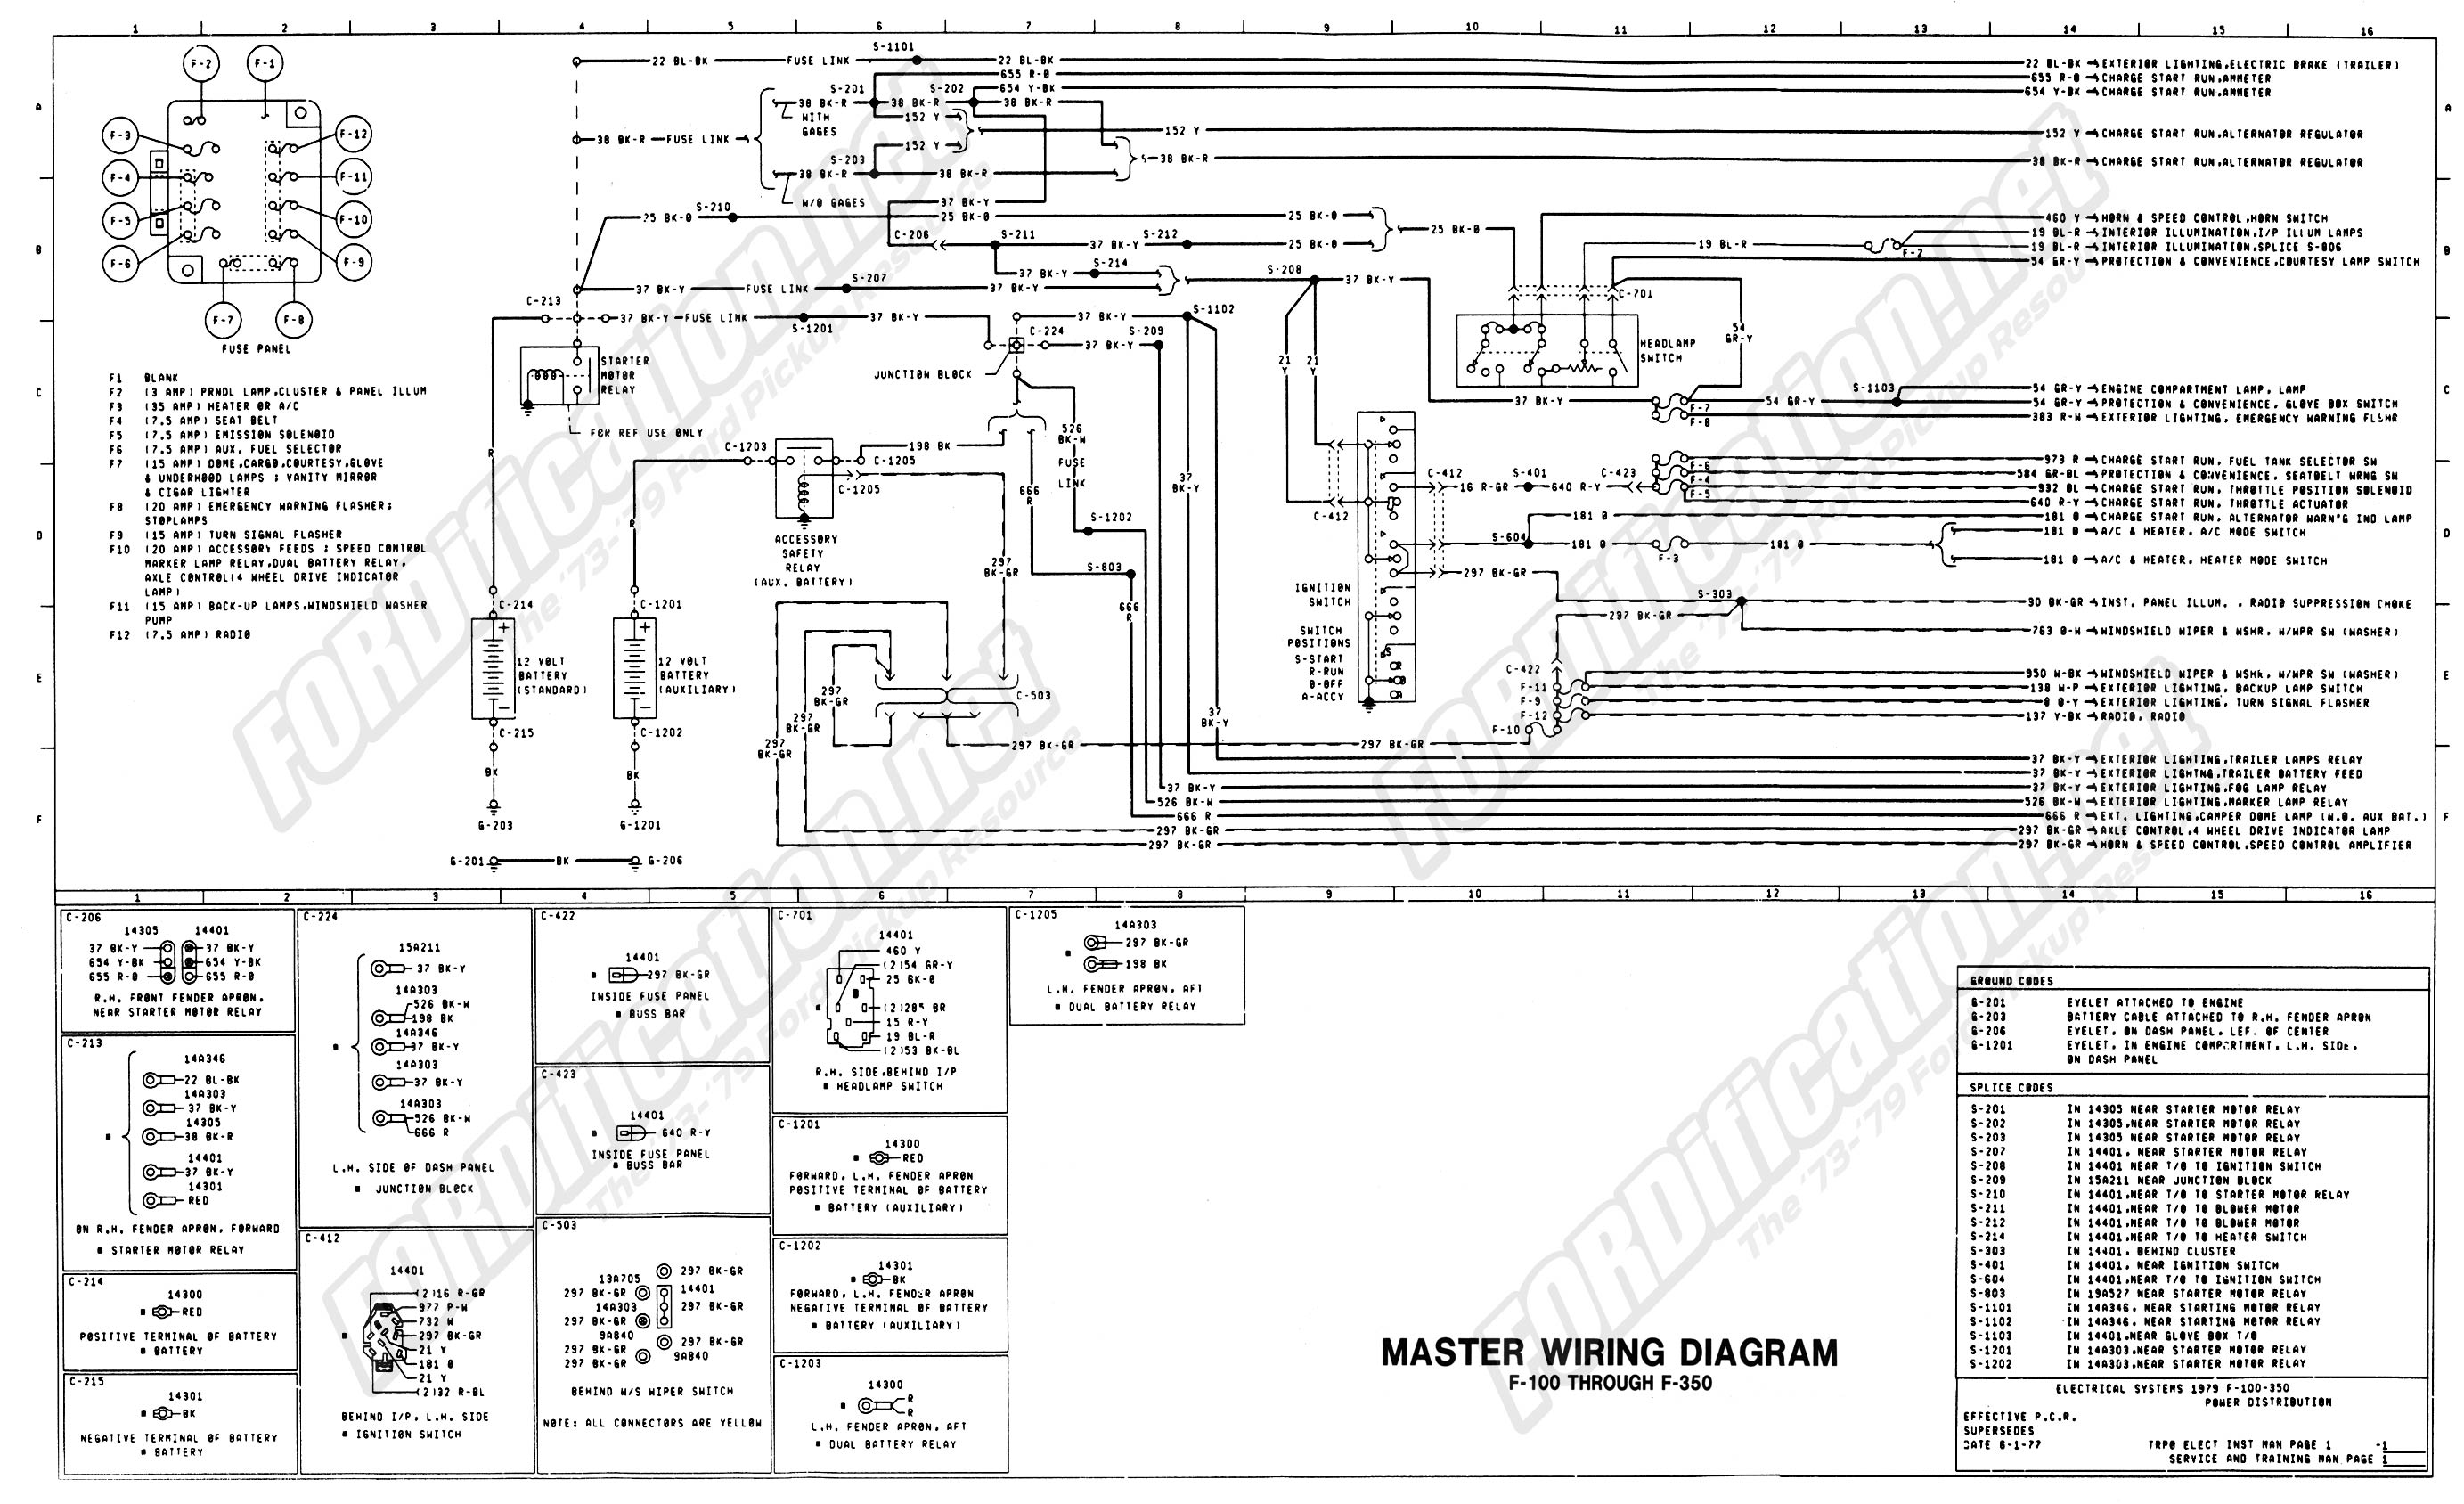 wiring_79master_1of9 1973 1979 ford truck wiring diagrams & schematics fordification net 1970 ford truck wiring diagram at crackthecode.co